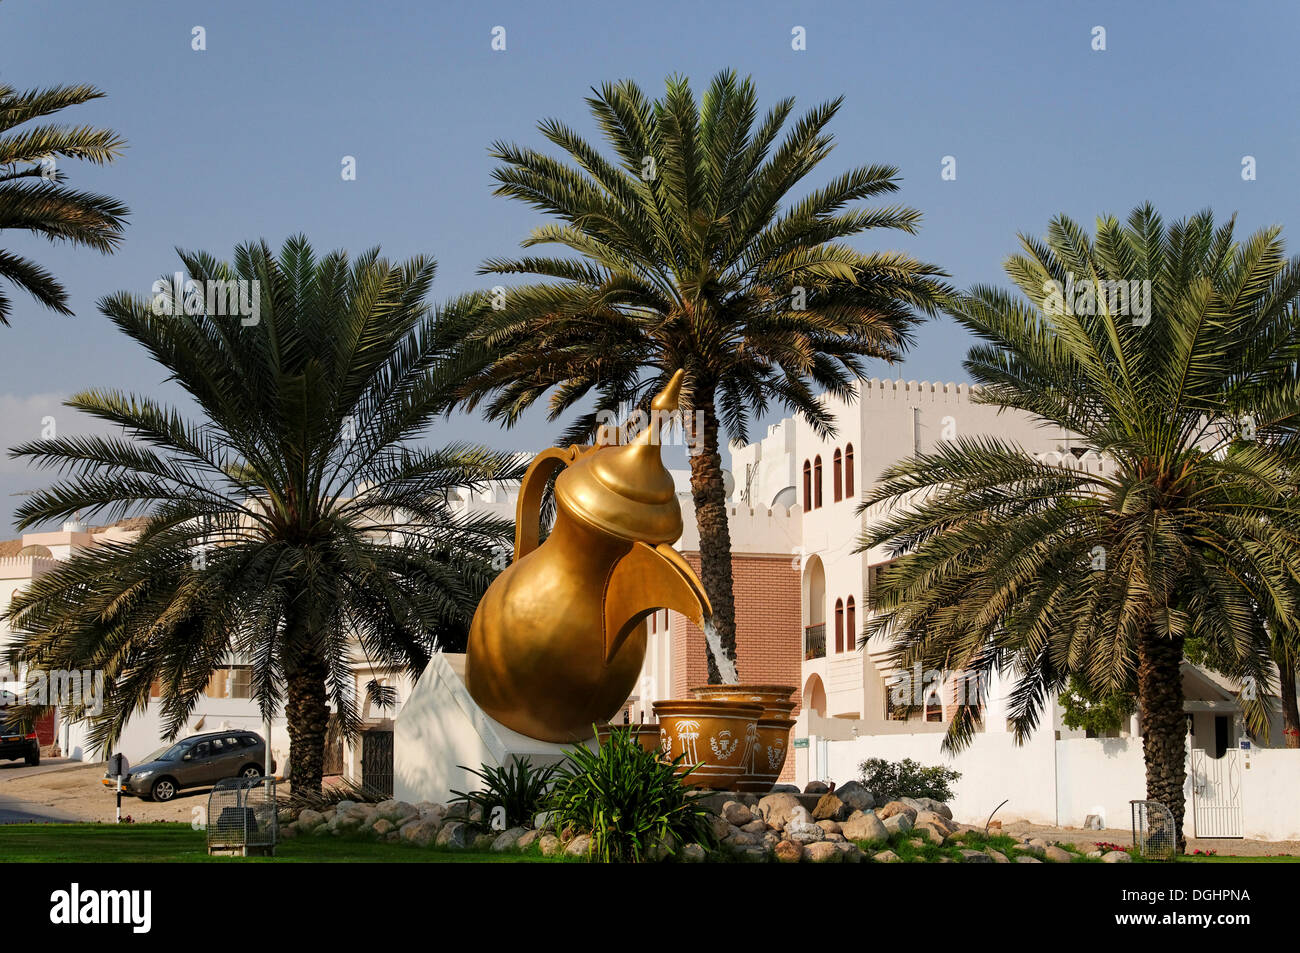 Oversize sculpture of a coffee pot with two cups, Capital Area, Oman, Middle East - Stock Image